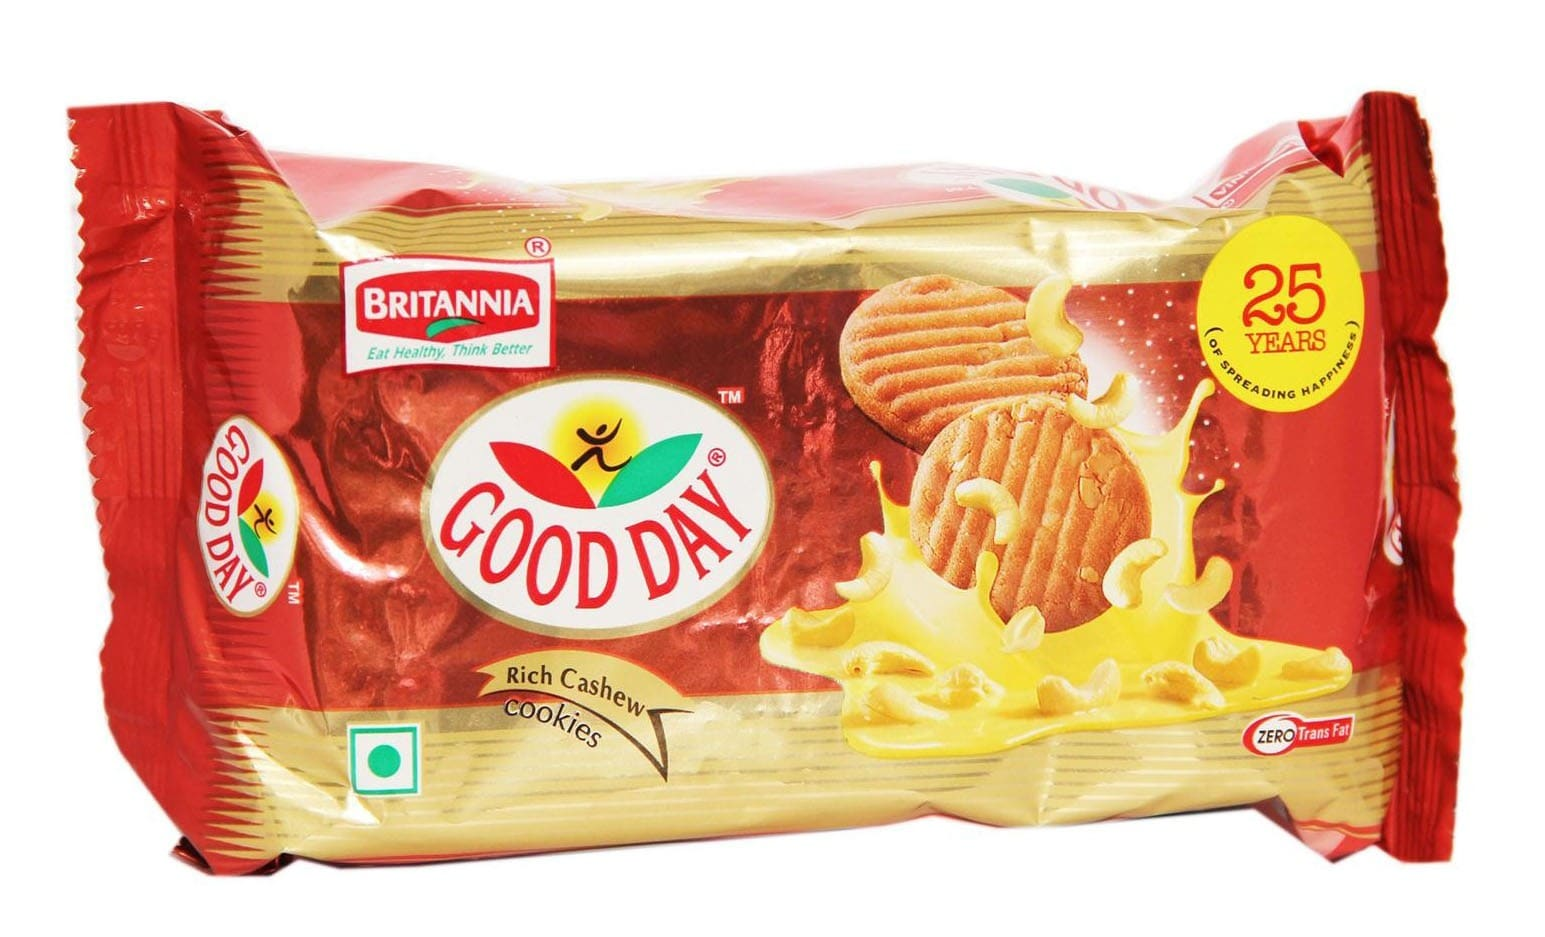 Britannia Good Day Rich Cashew Cookies 200 Gm